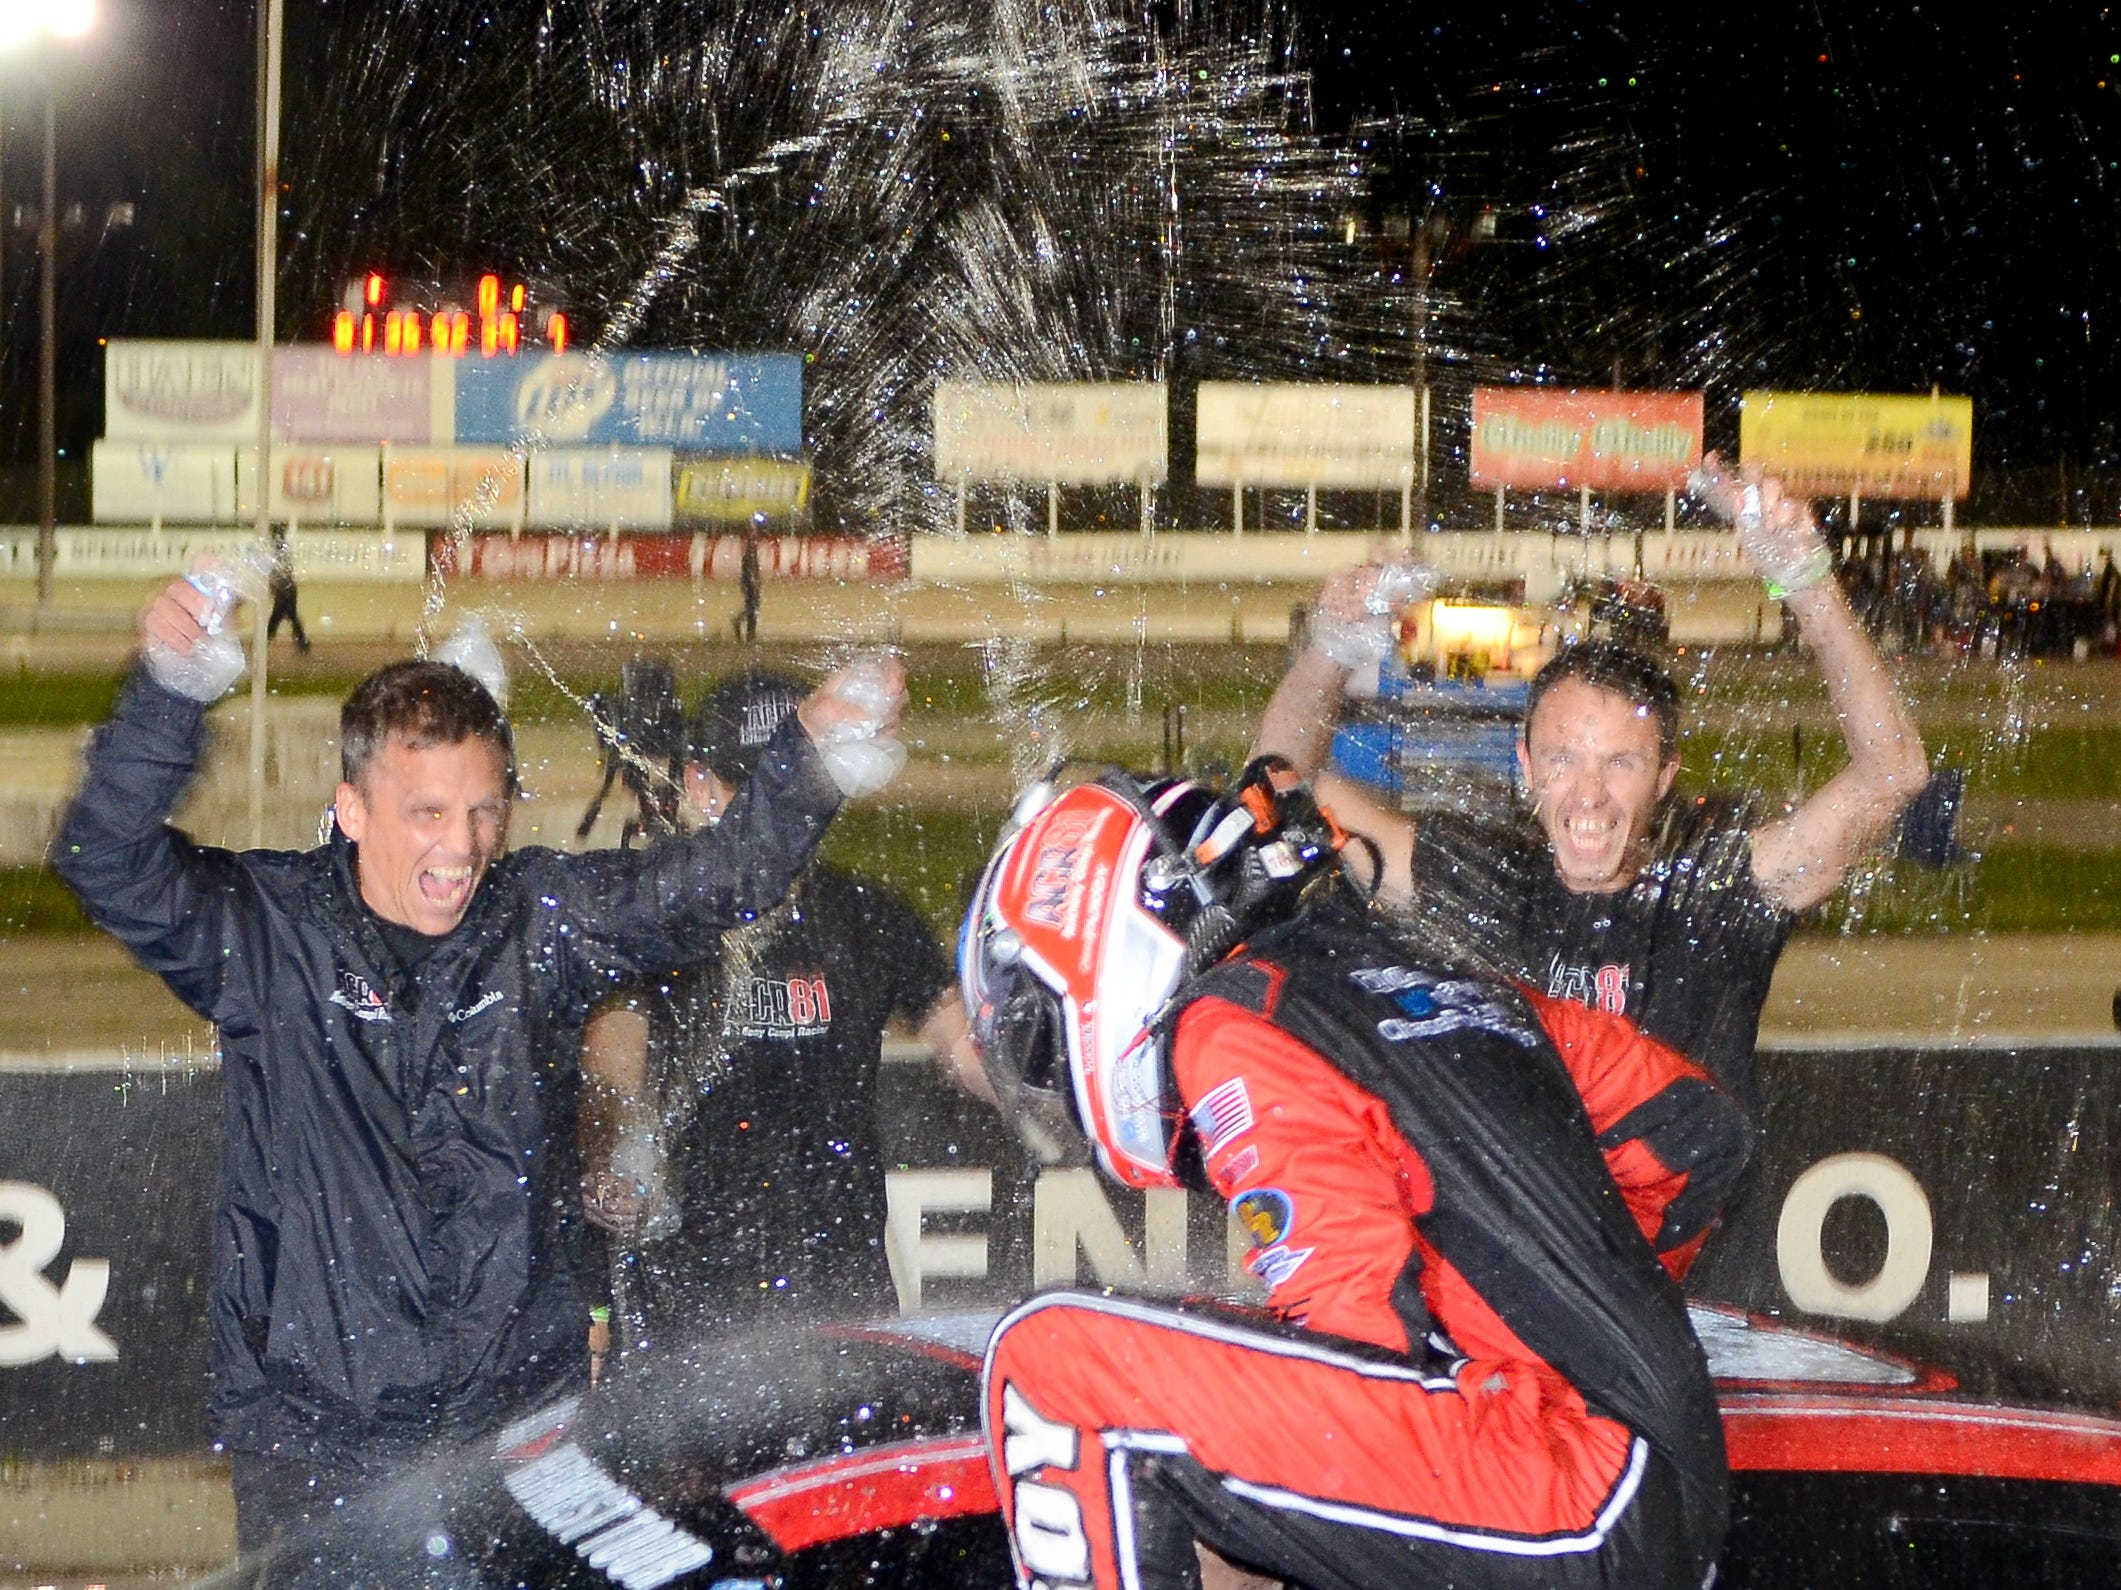 Chase Purdy's crew douse him after his victory in the ARCA Midwest Tour Dixieland 250 on Tuesday, August 7, 2018, at Wisconsin International Raceway in Kaukauna, Wis.